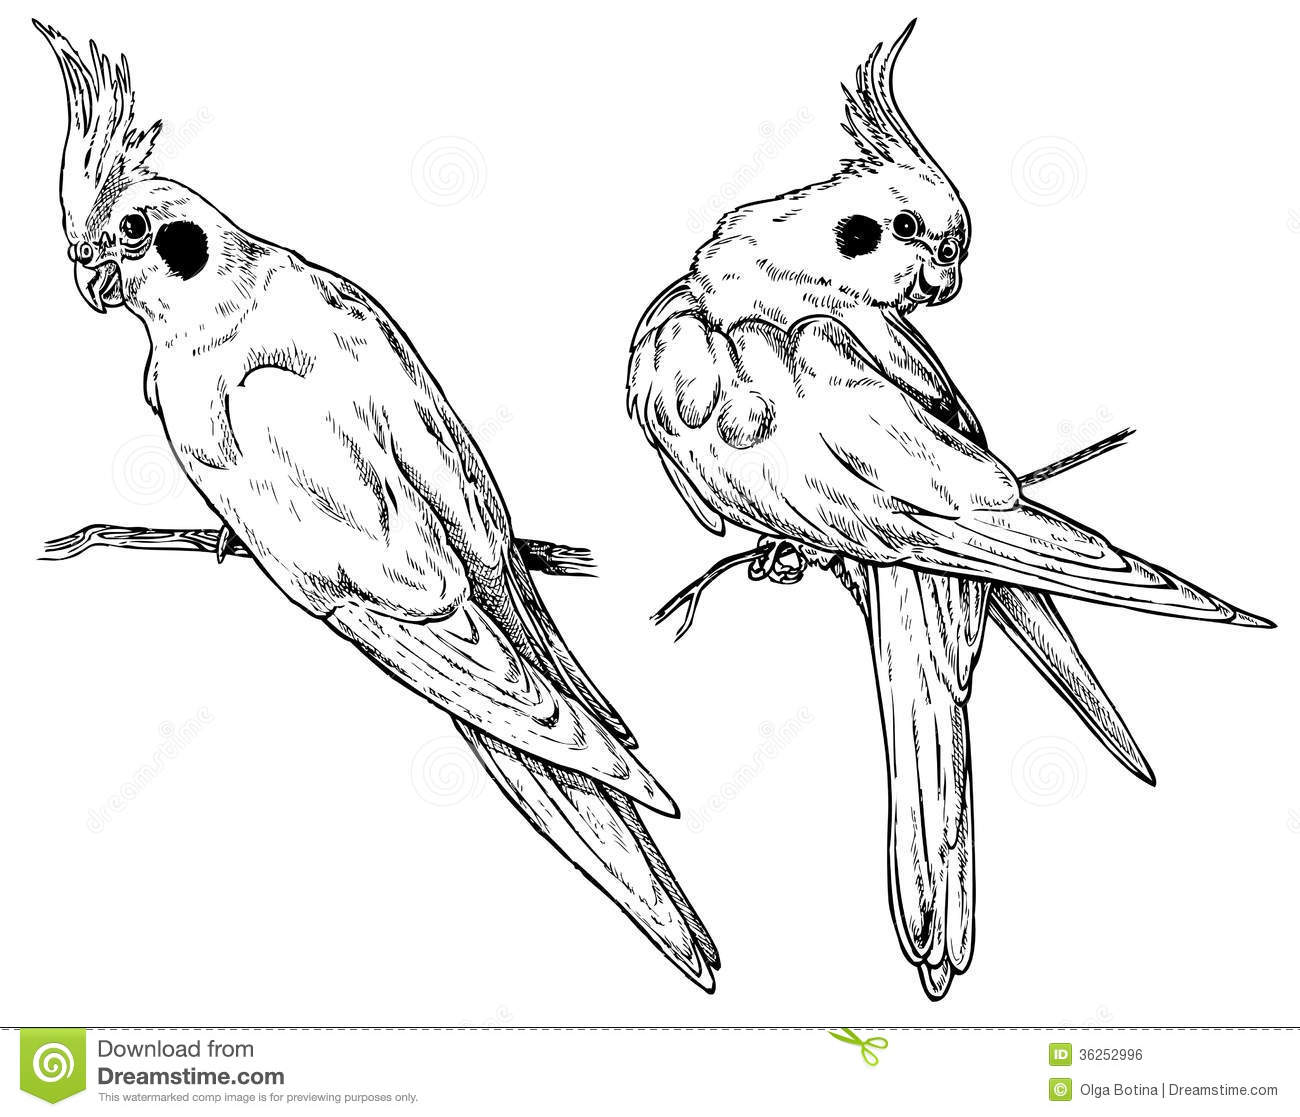 Royalty Free Stock Image Cockatiel Parrot Two Perspectives Drawing Paper Image36252996 in addition Stock Photography Dot To Dot Game Haunted House Image21475042 besides File clemuel ricketts house drawing 1 also Royalty Free Stock Image Cat Dog Bunny Image28134016 further Pet Dog And Cat Icons And Symbols Gm478223182 67540781. on dog house plans